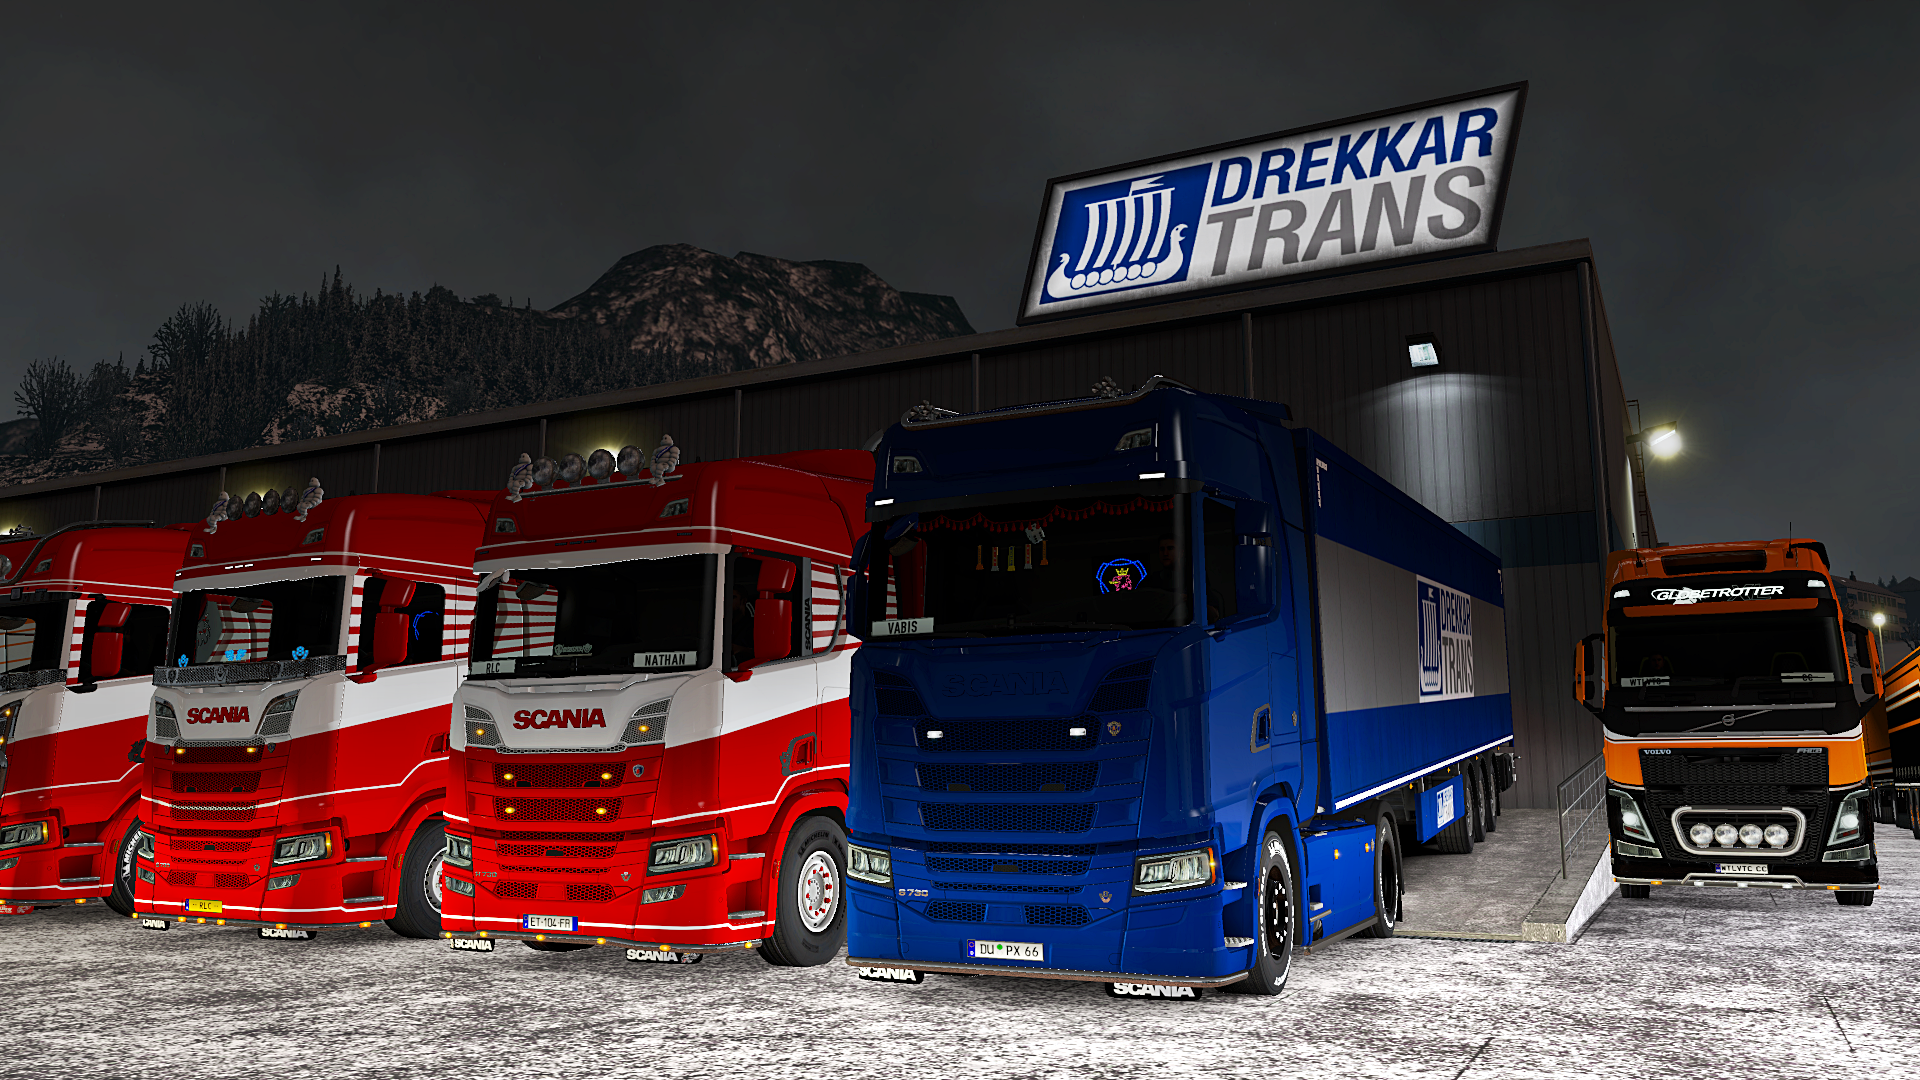 ets2_20190113_205455_00.png